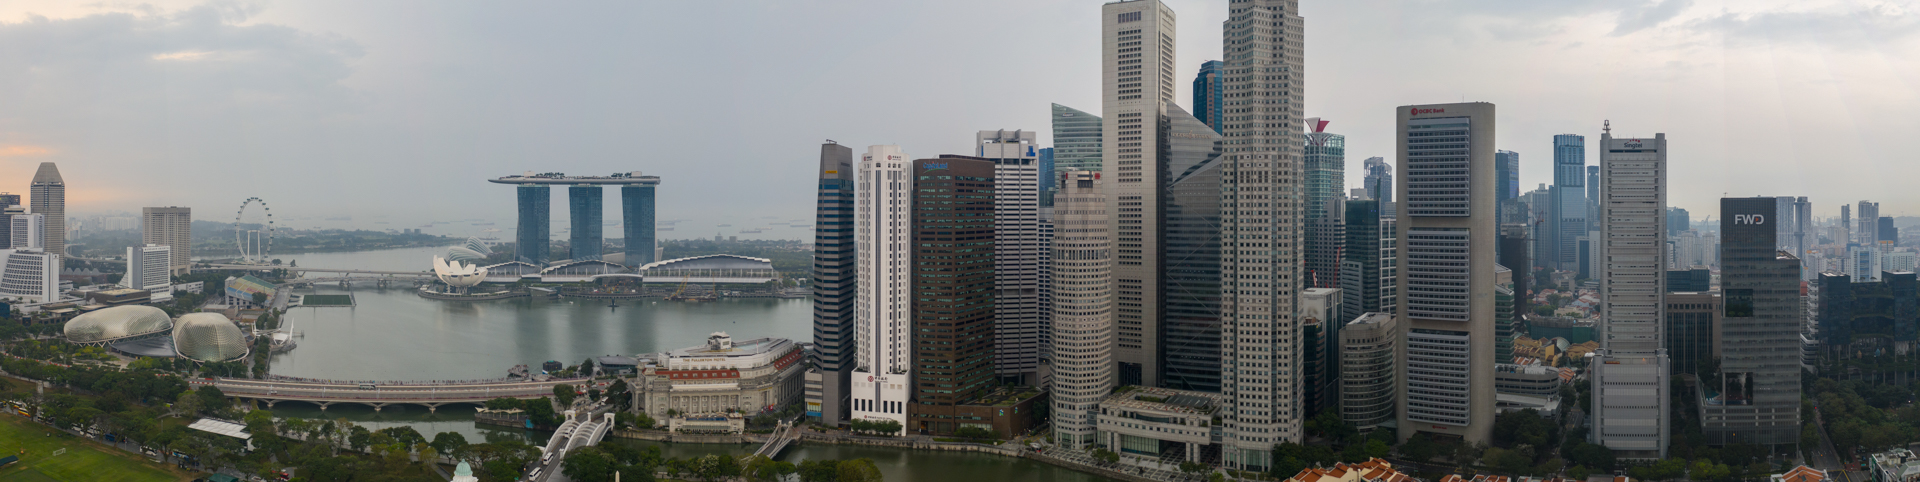 Singapore's Downtown Skyscrapers. Marina Bay Sands, Clarke Quay, Boat Quay in a panoramic shot.